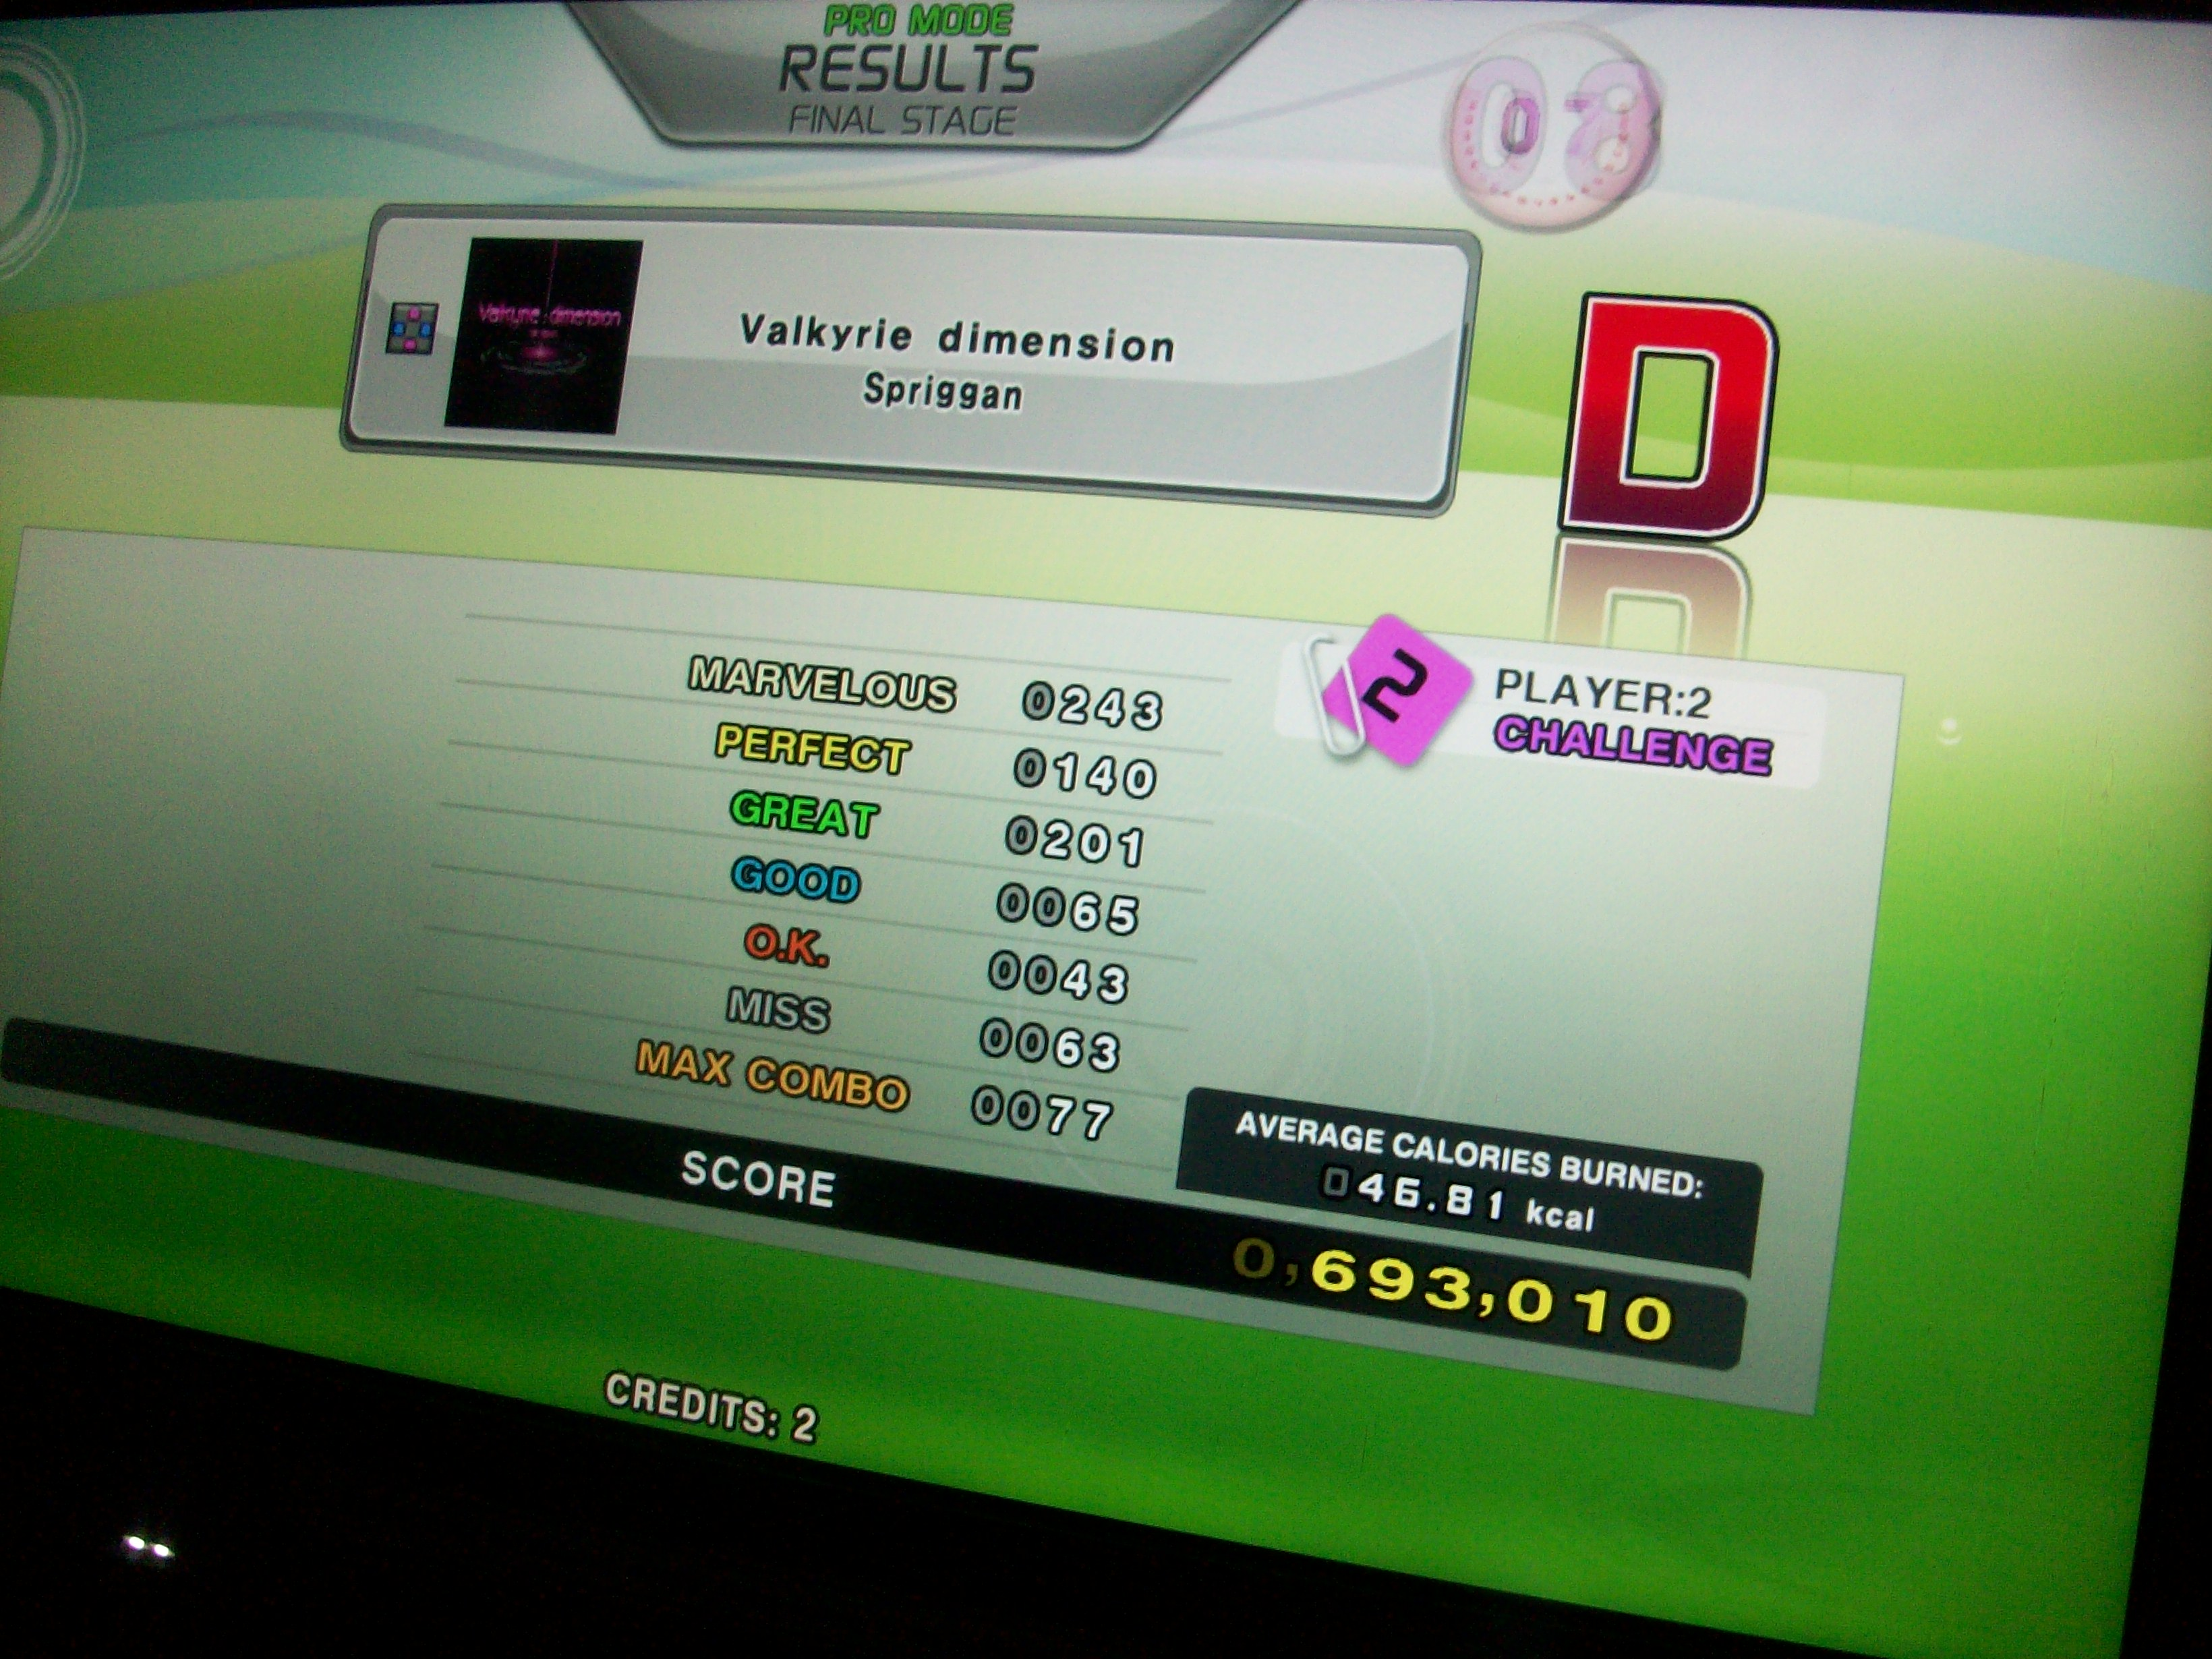 Valkyrie dimension CSP